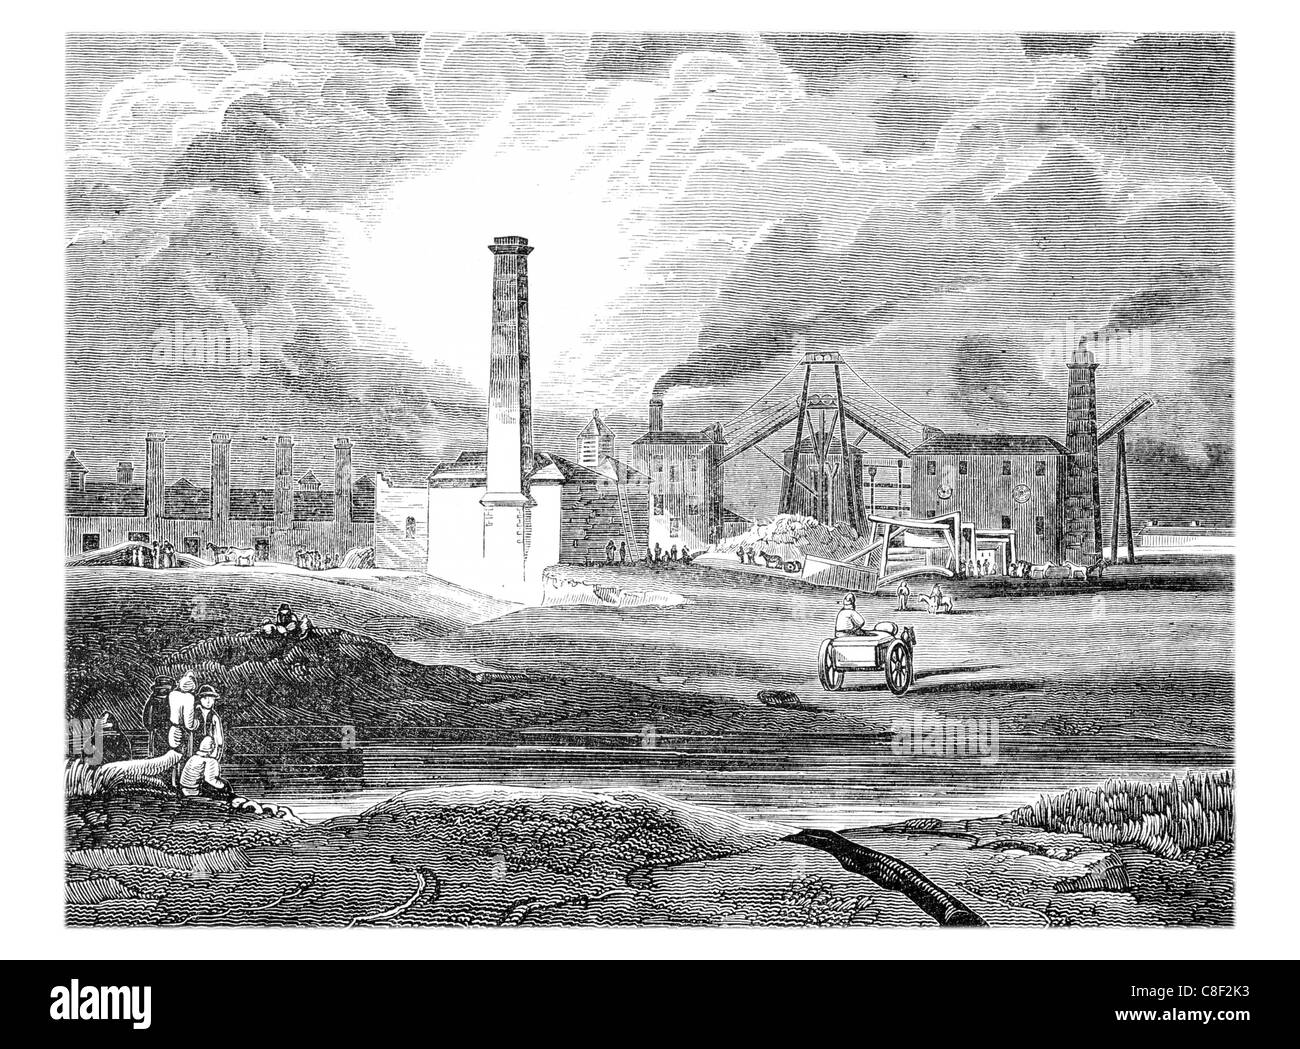 South Hetton colliery Durham coal mining mine trade industry industrial revolution colliery miners miner mines transport - Stock Image